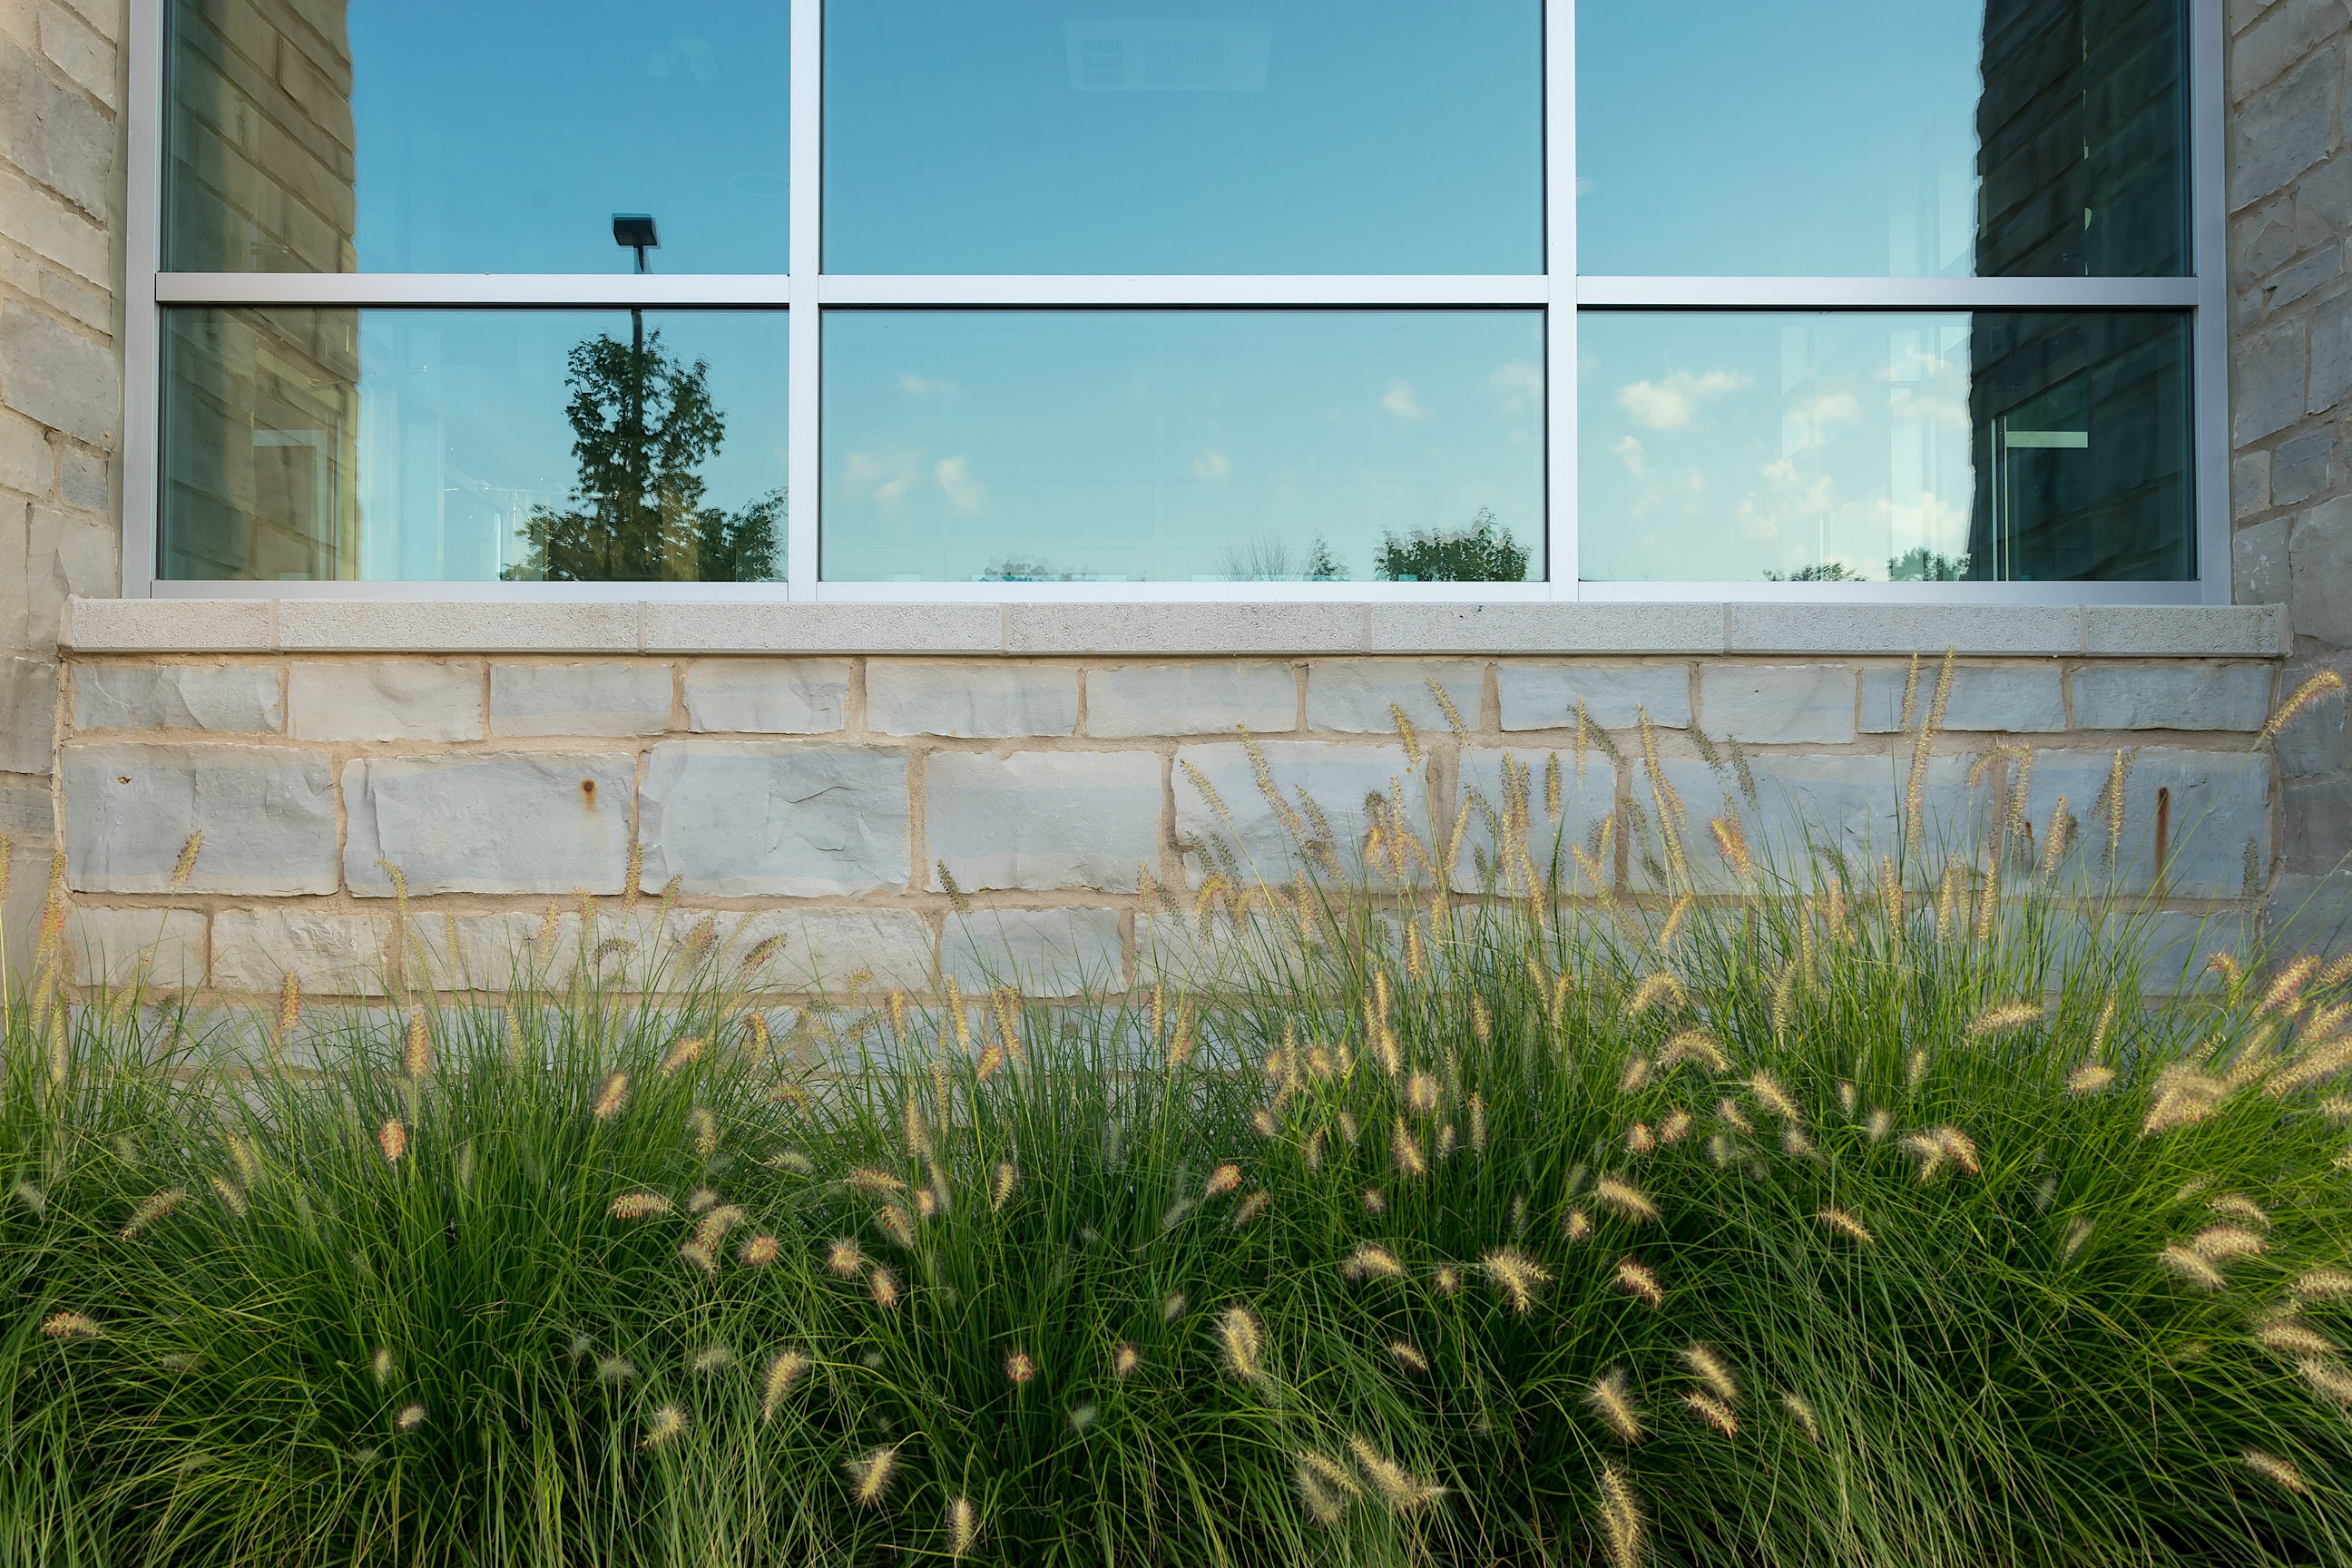 Close up to the front entrance of the church to show some landscaping too